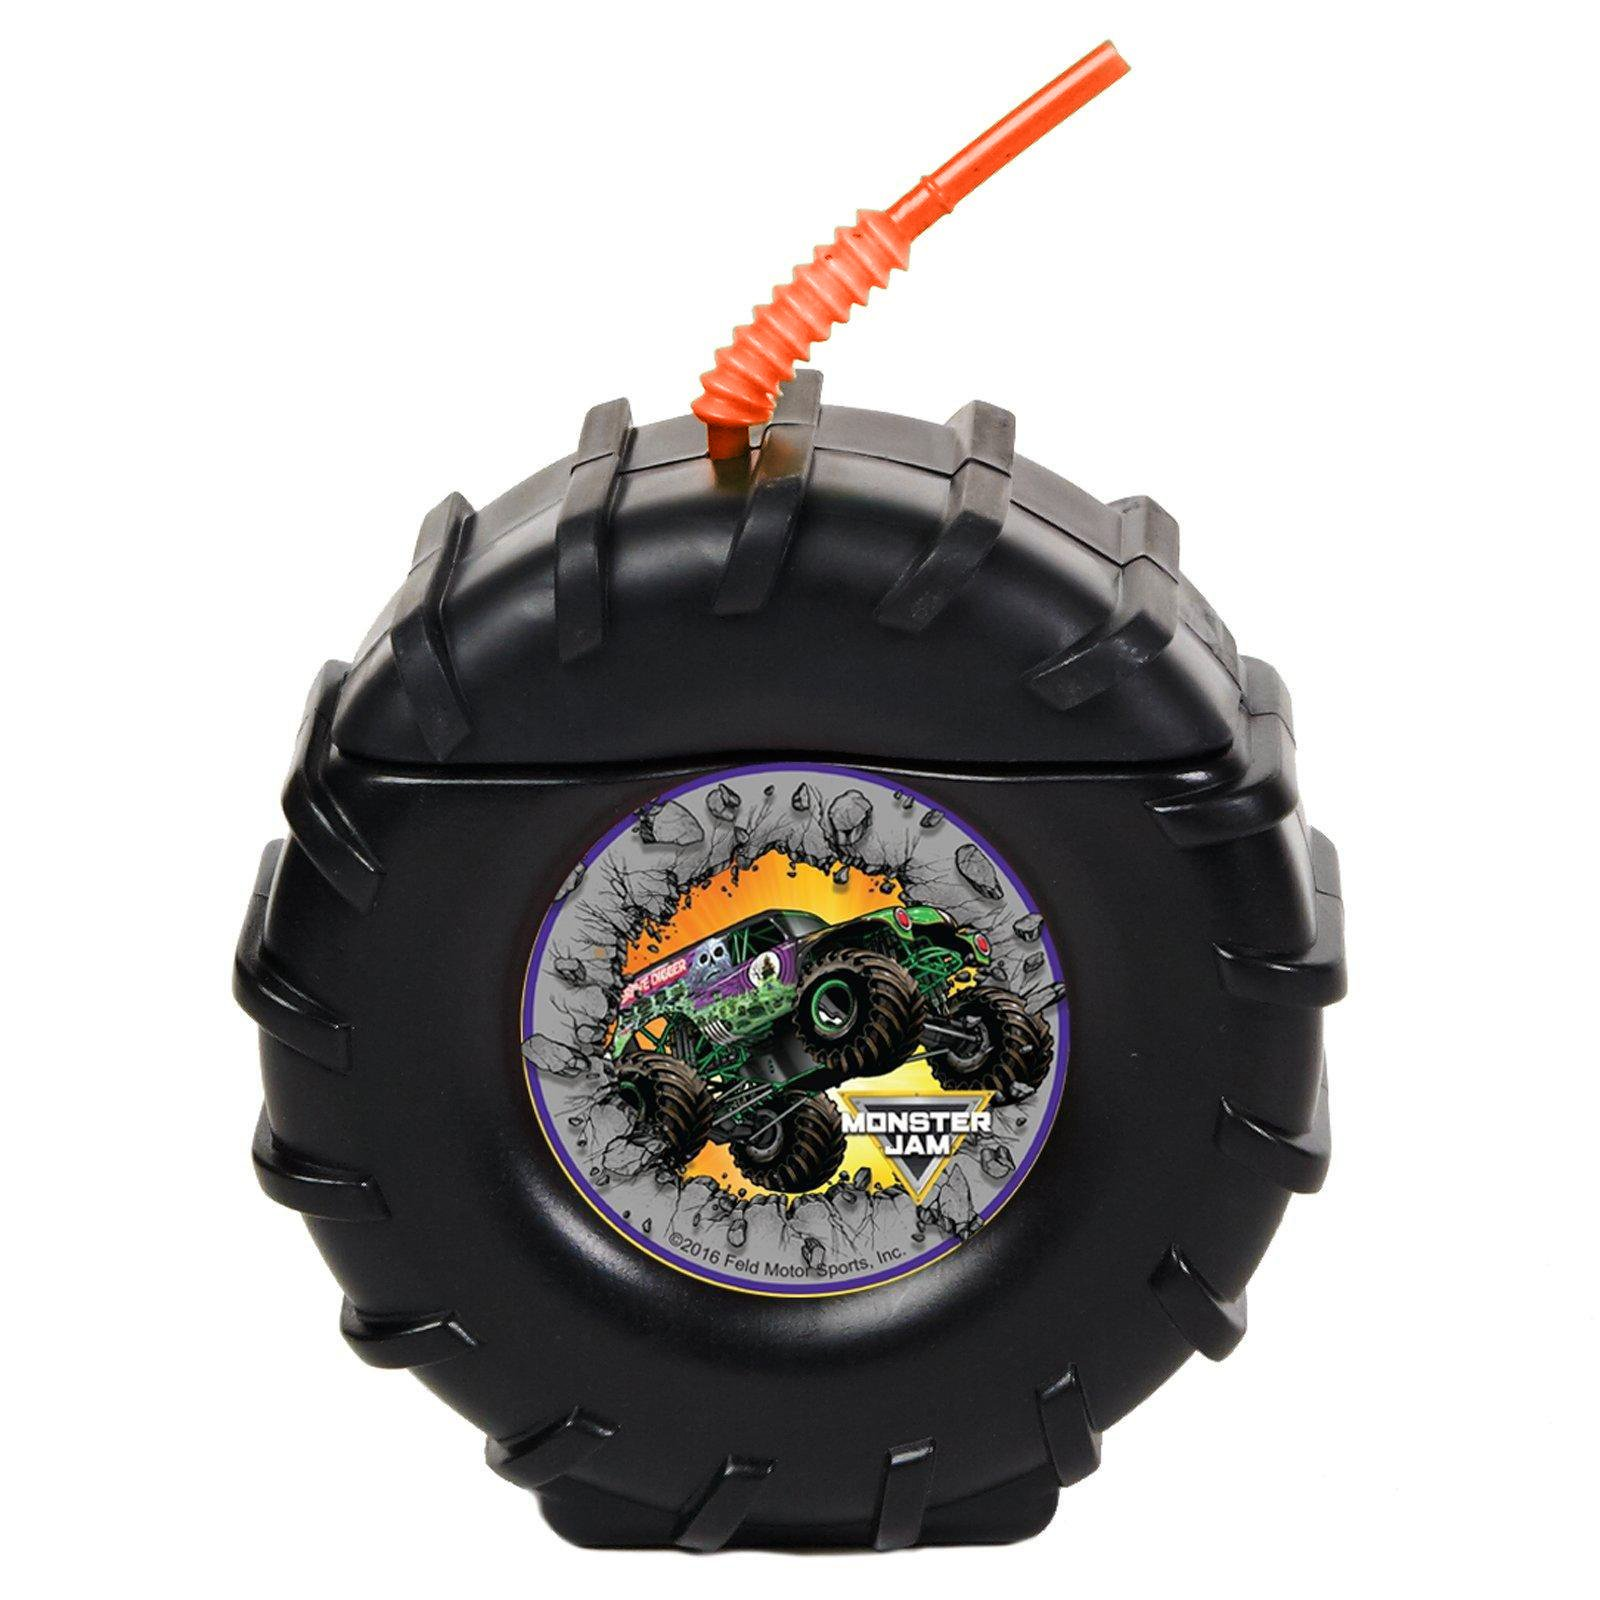 Monster Jam Childrens Birthday Party Supplies - Truck Tire Plastic Sippy Cup with Straw (8)